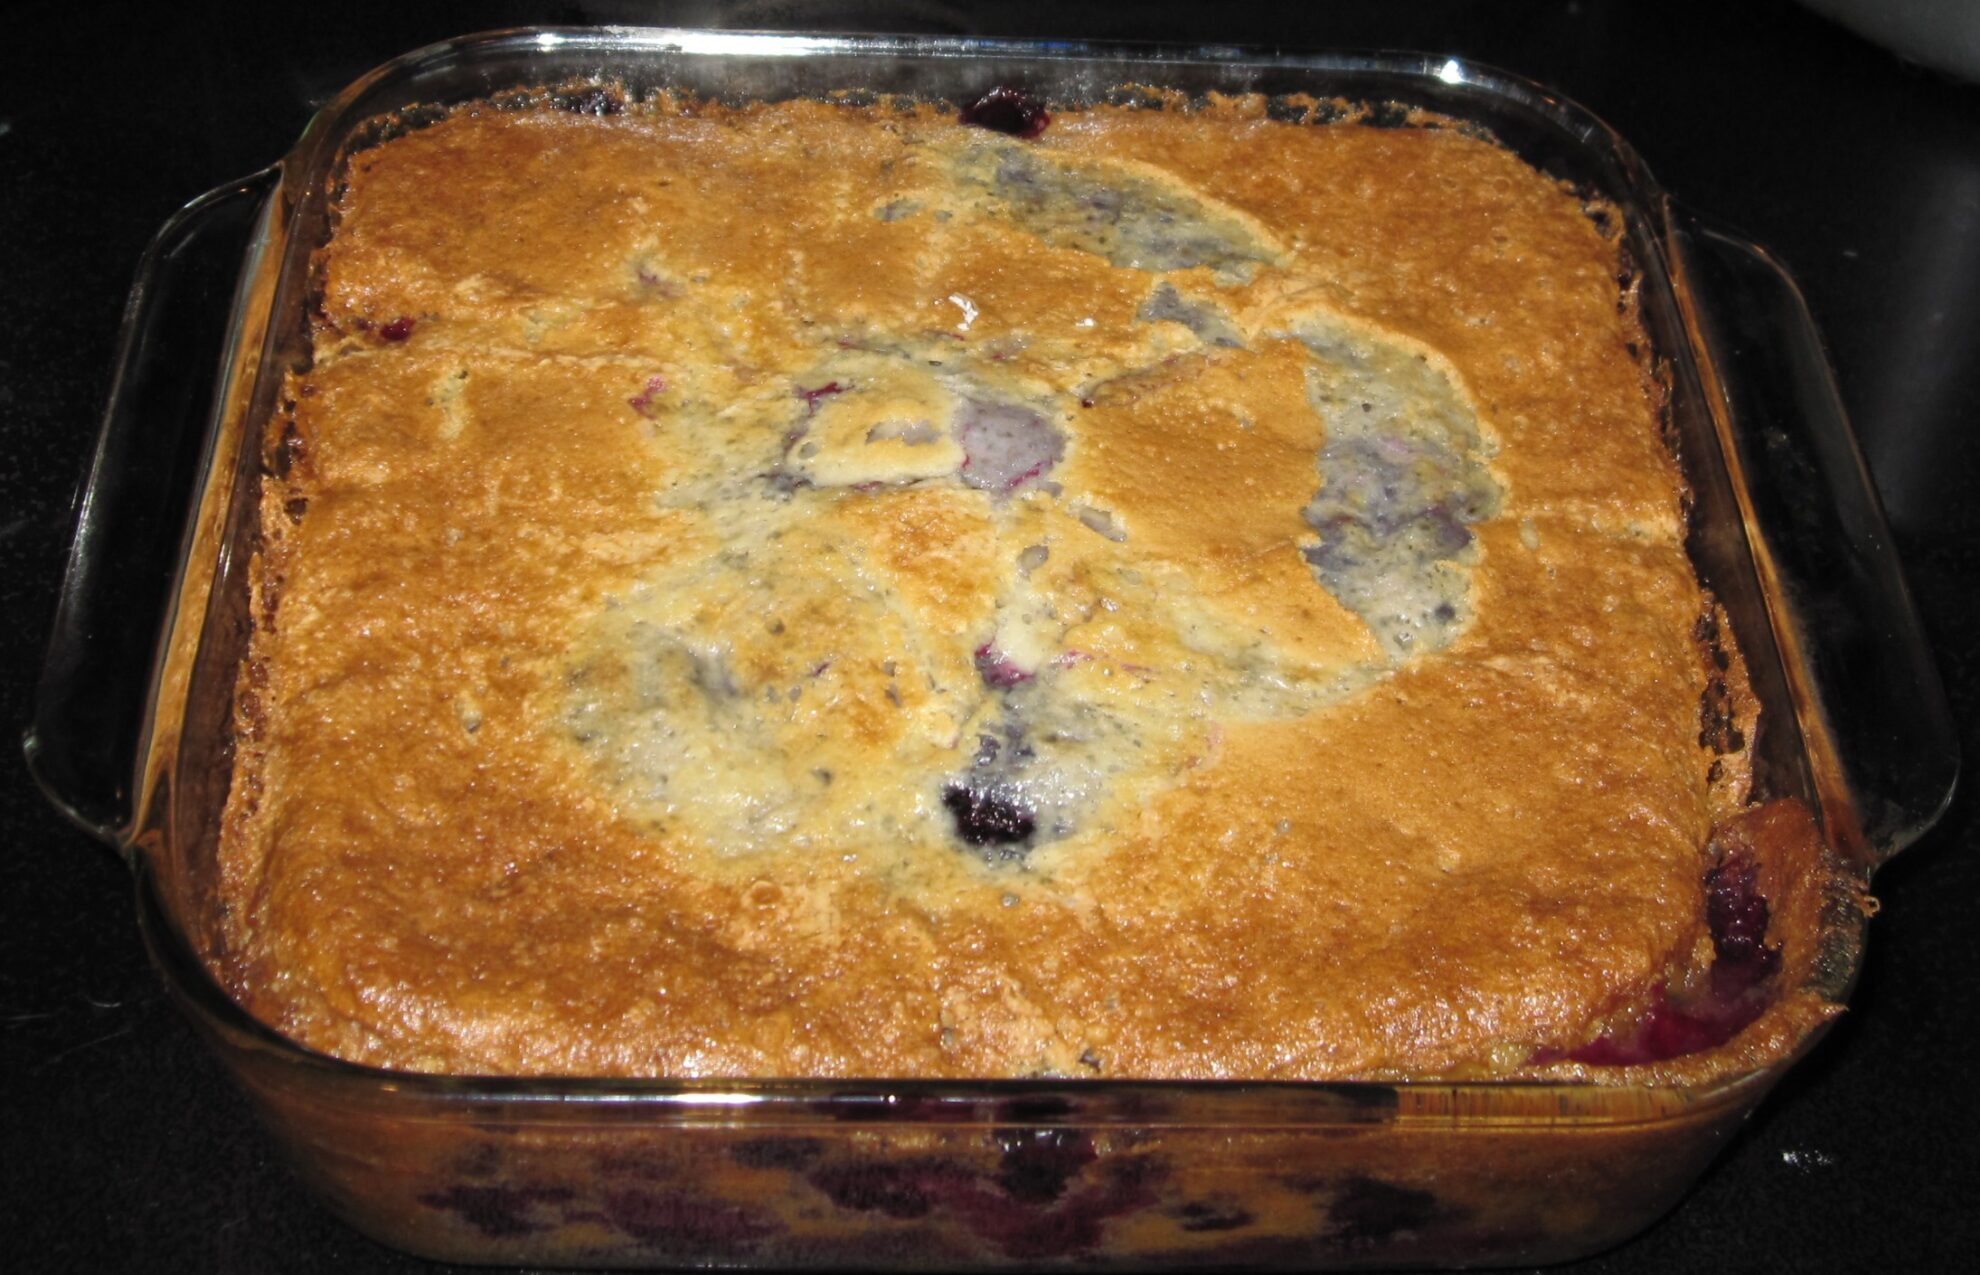 quenby bontrager: Blackberry cobbler recipe